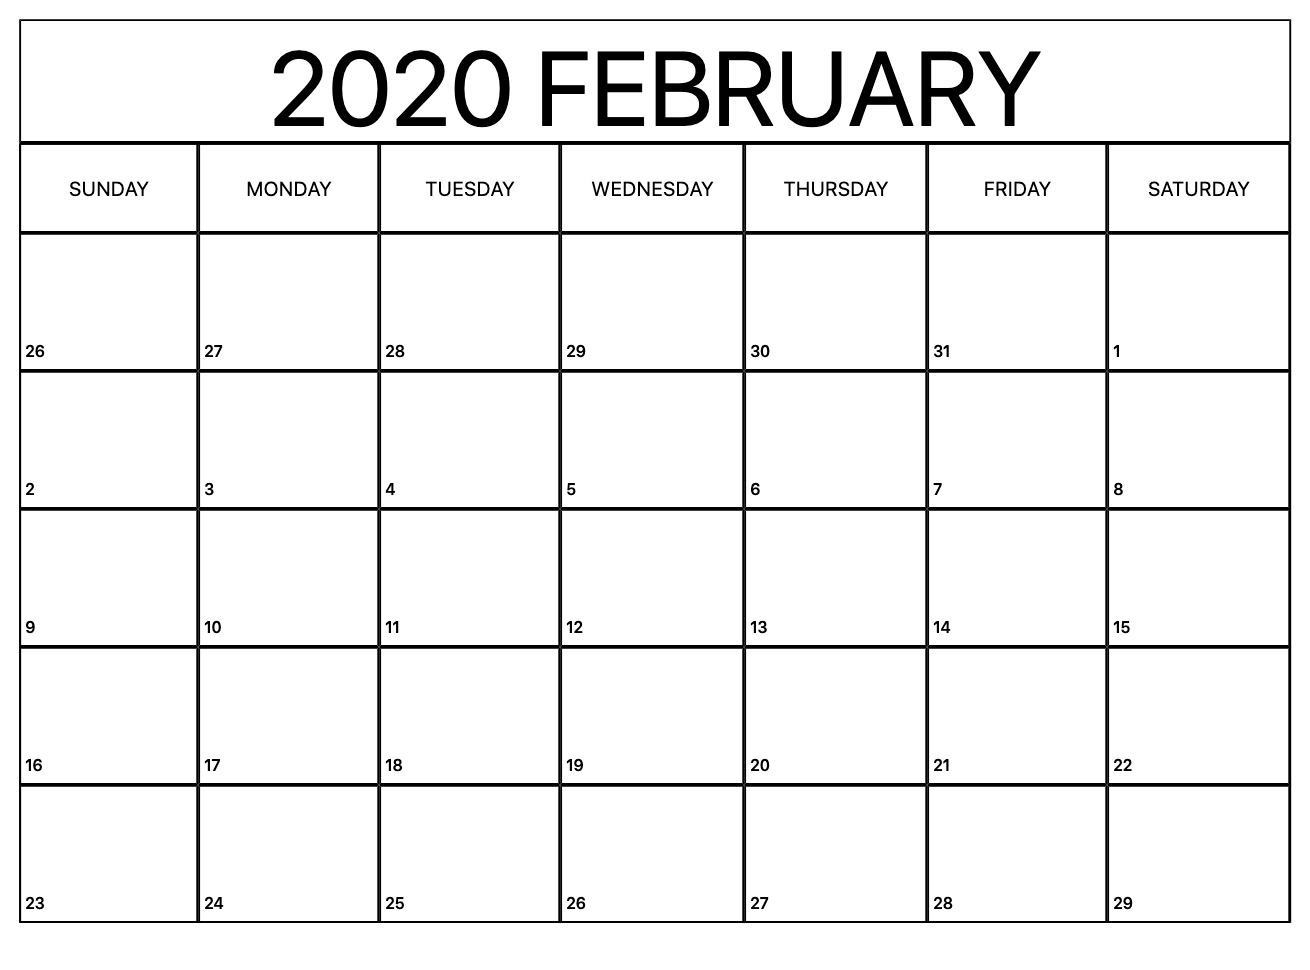 Printable February Calendar For 2020 – Waterproof Paper | 12 inside Free Printable Calendar 2020 Waterproof